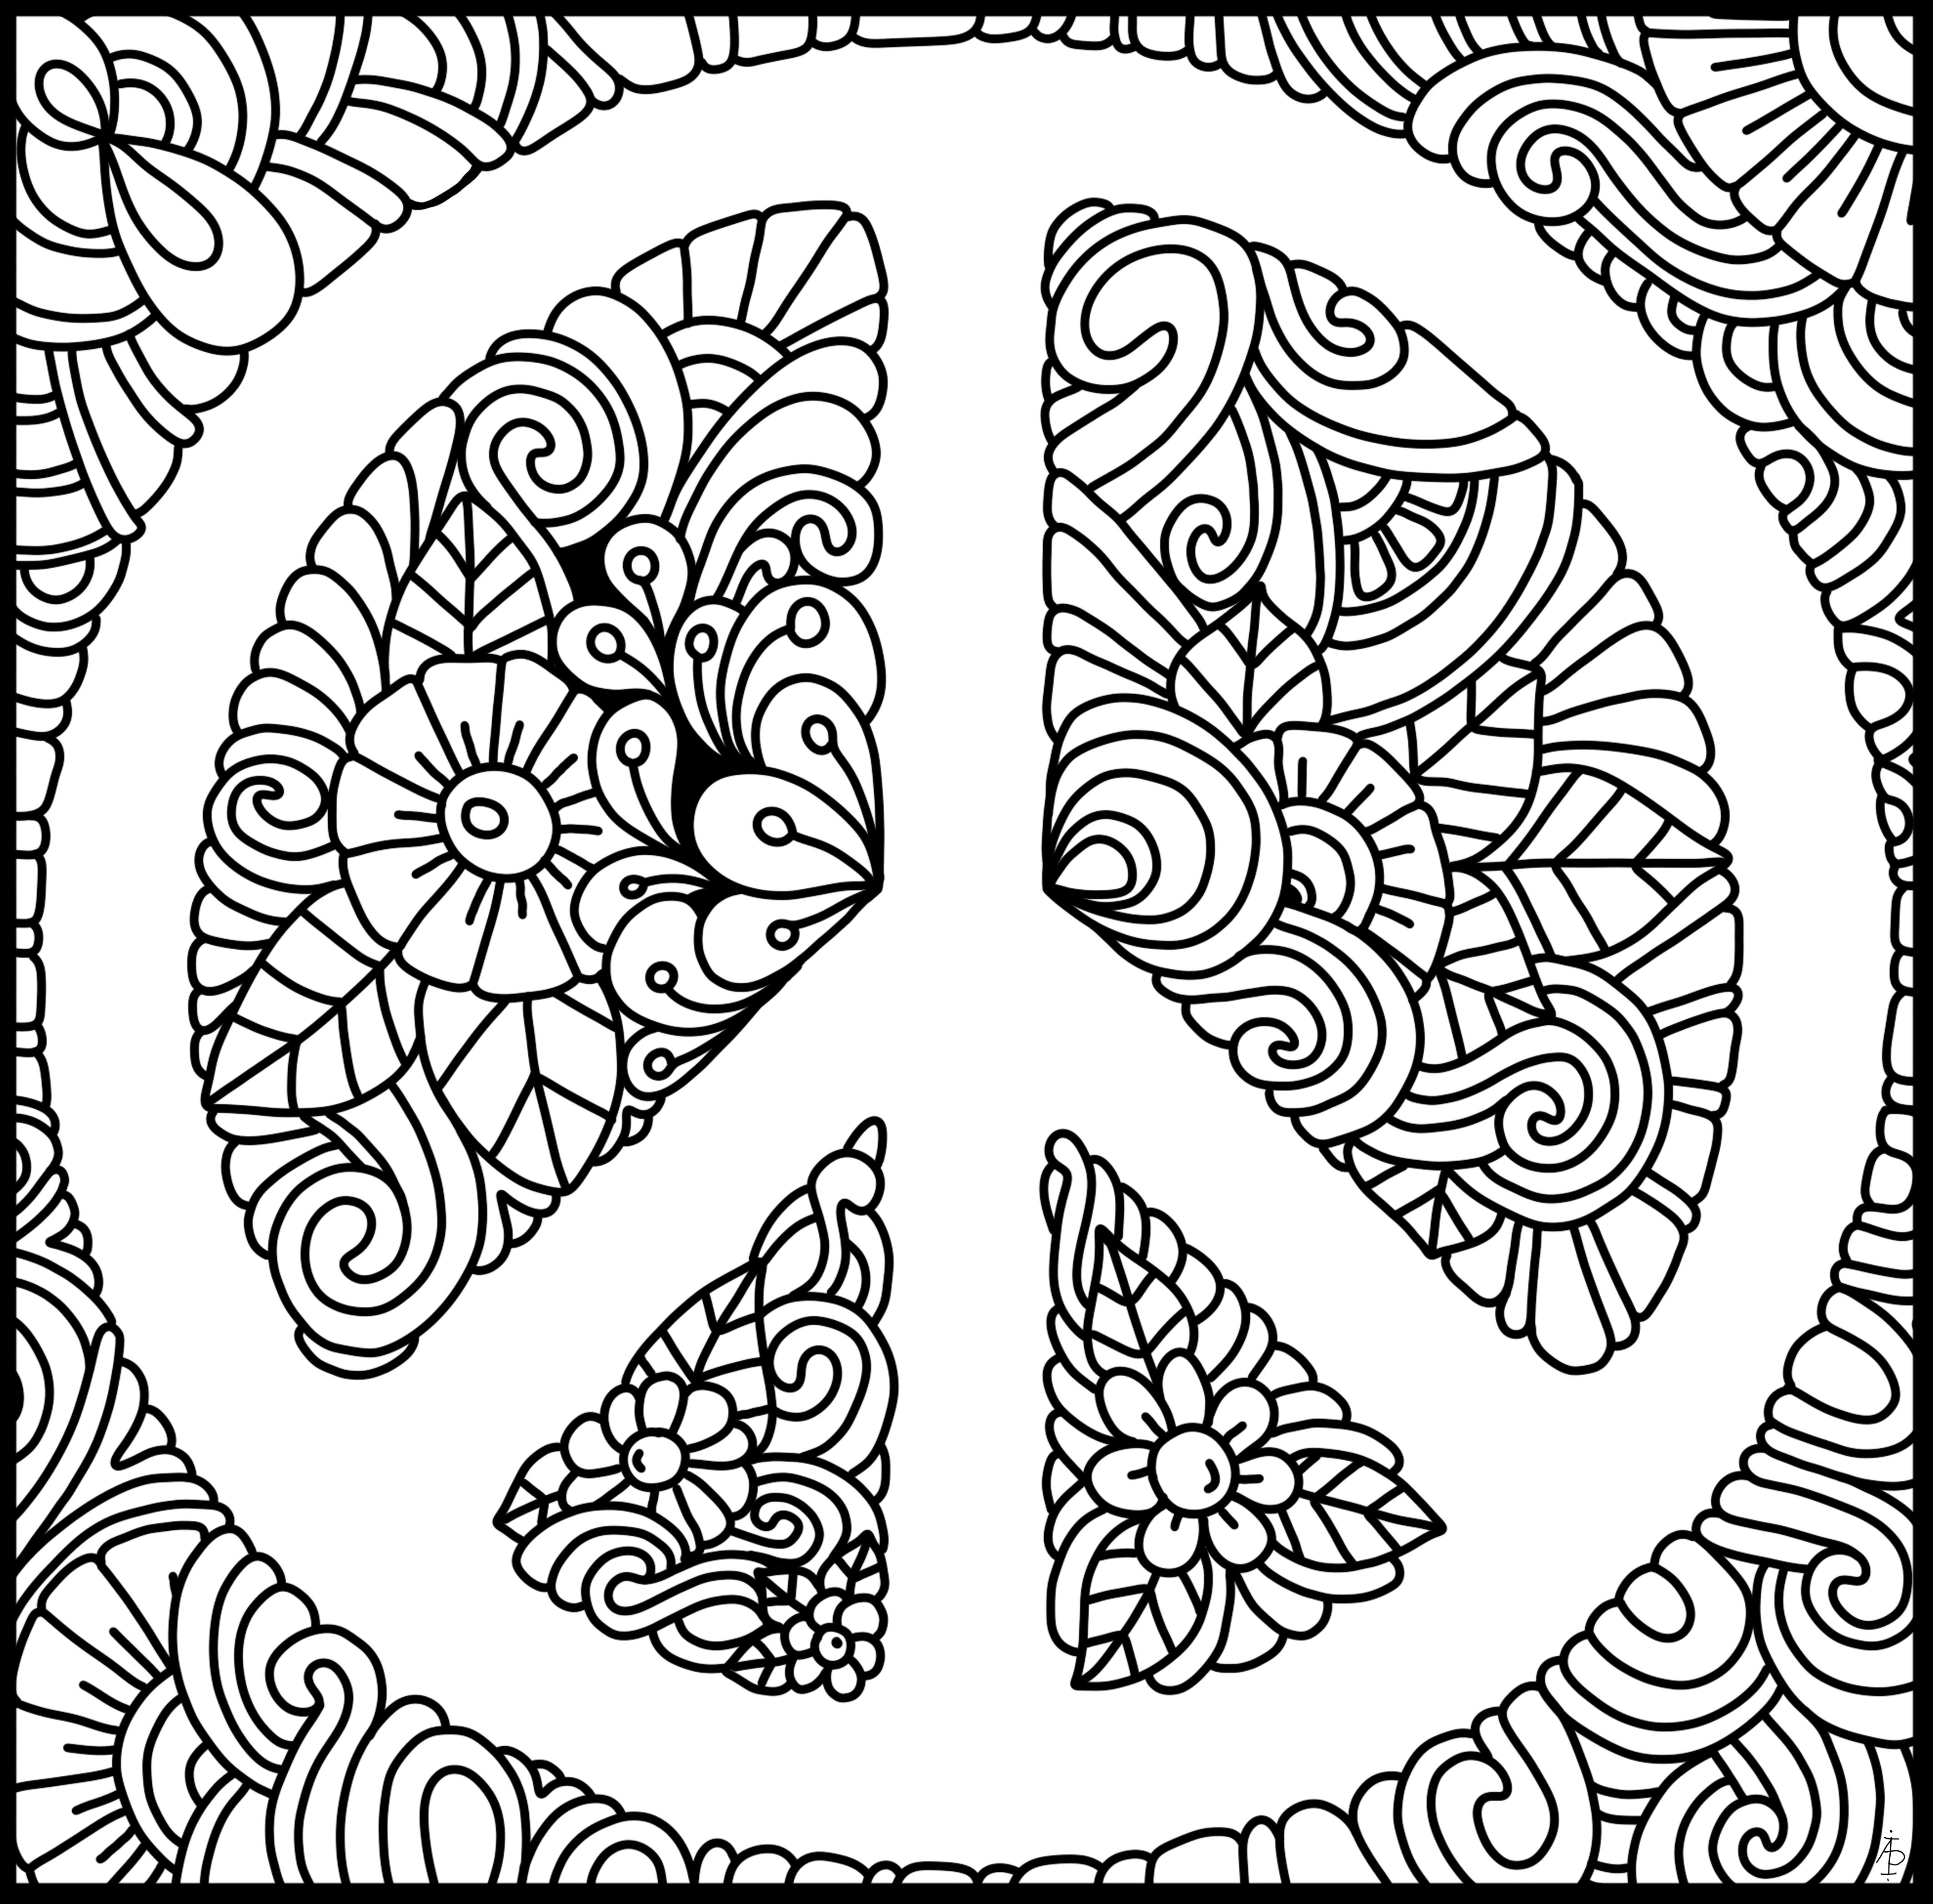 peace-sign-by-angela-porter